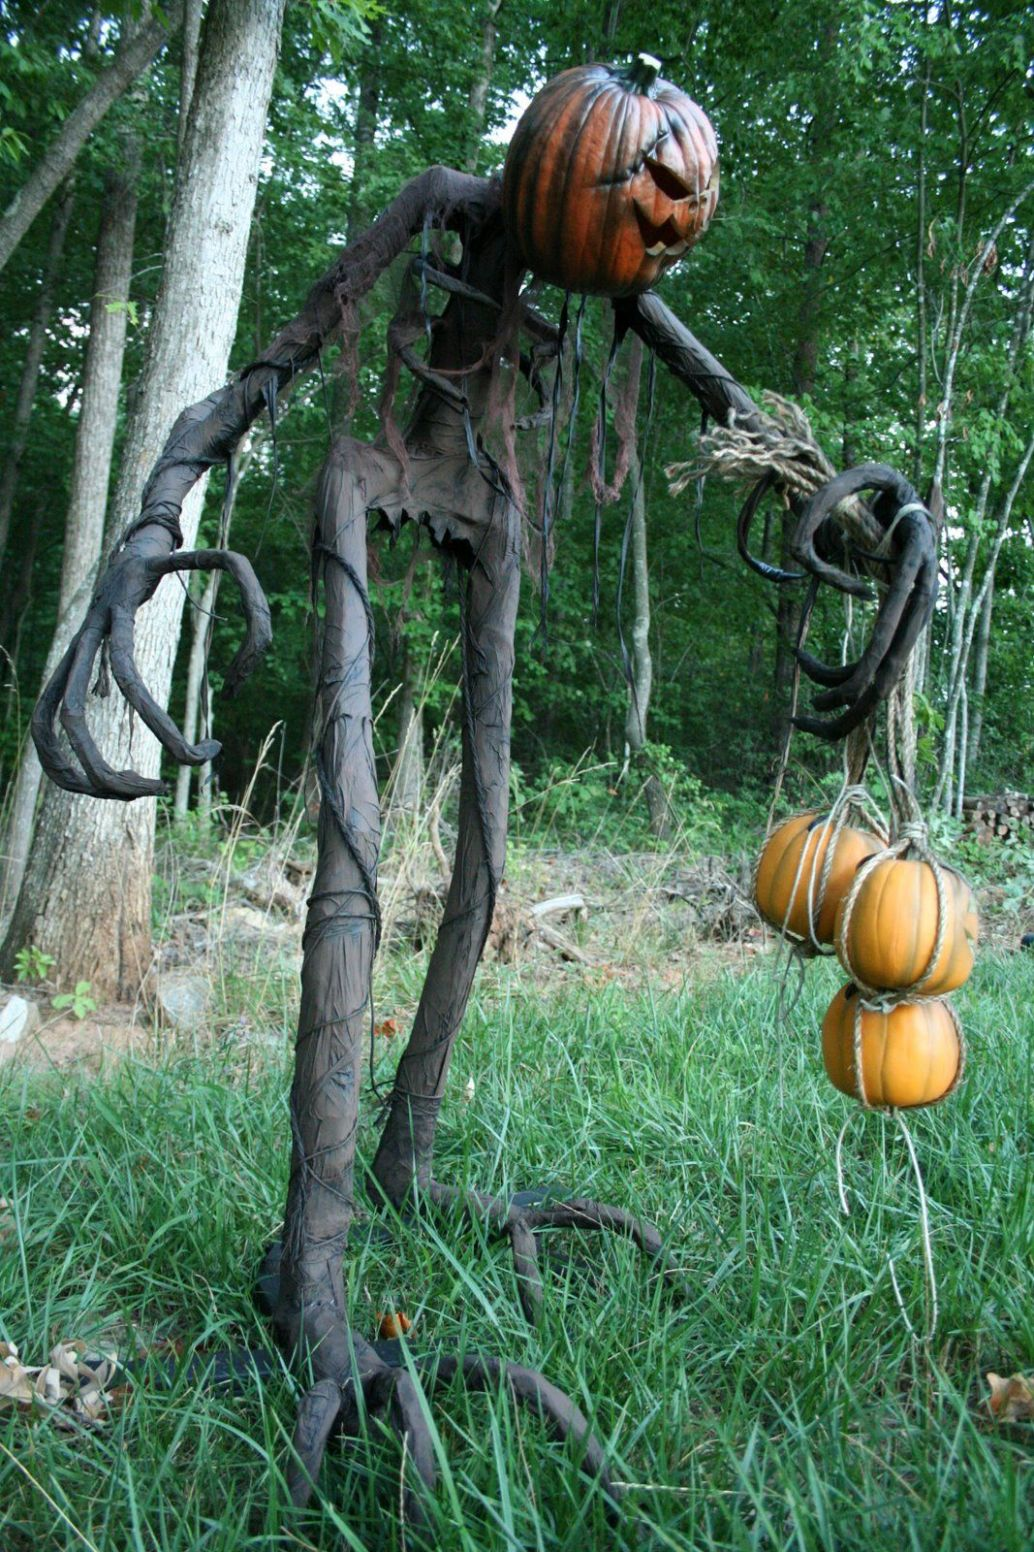 Grim: Step by step (With images) | Halloween outdoor decorations - halloween ideas decorations outside